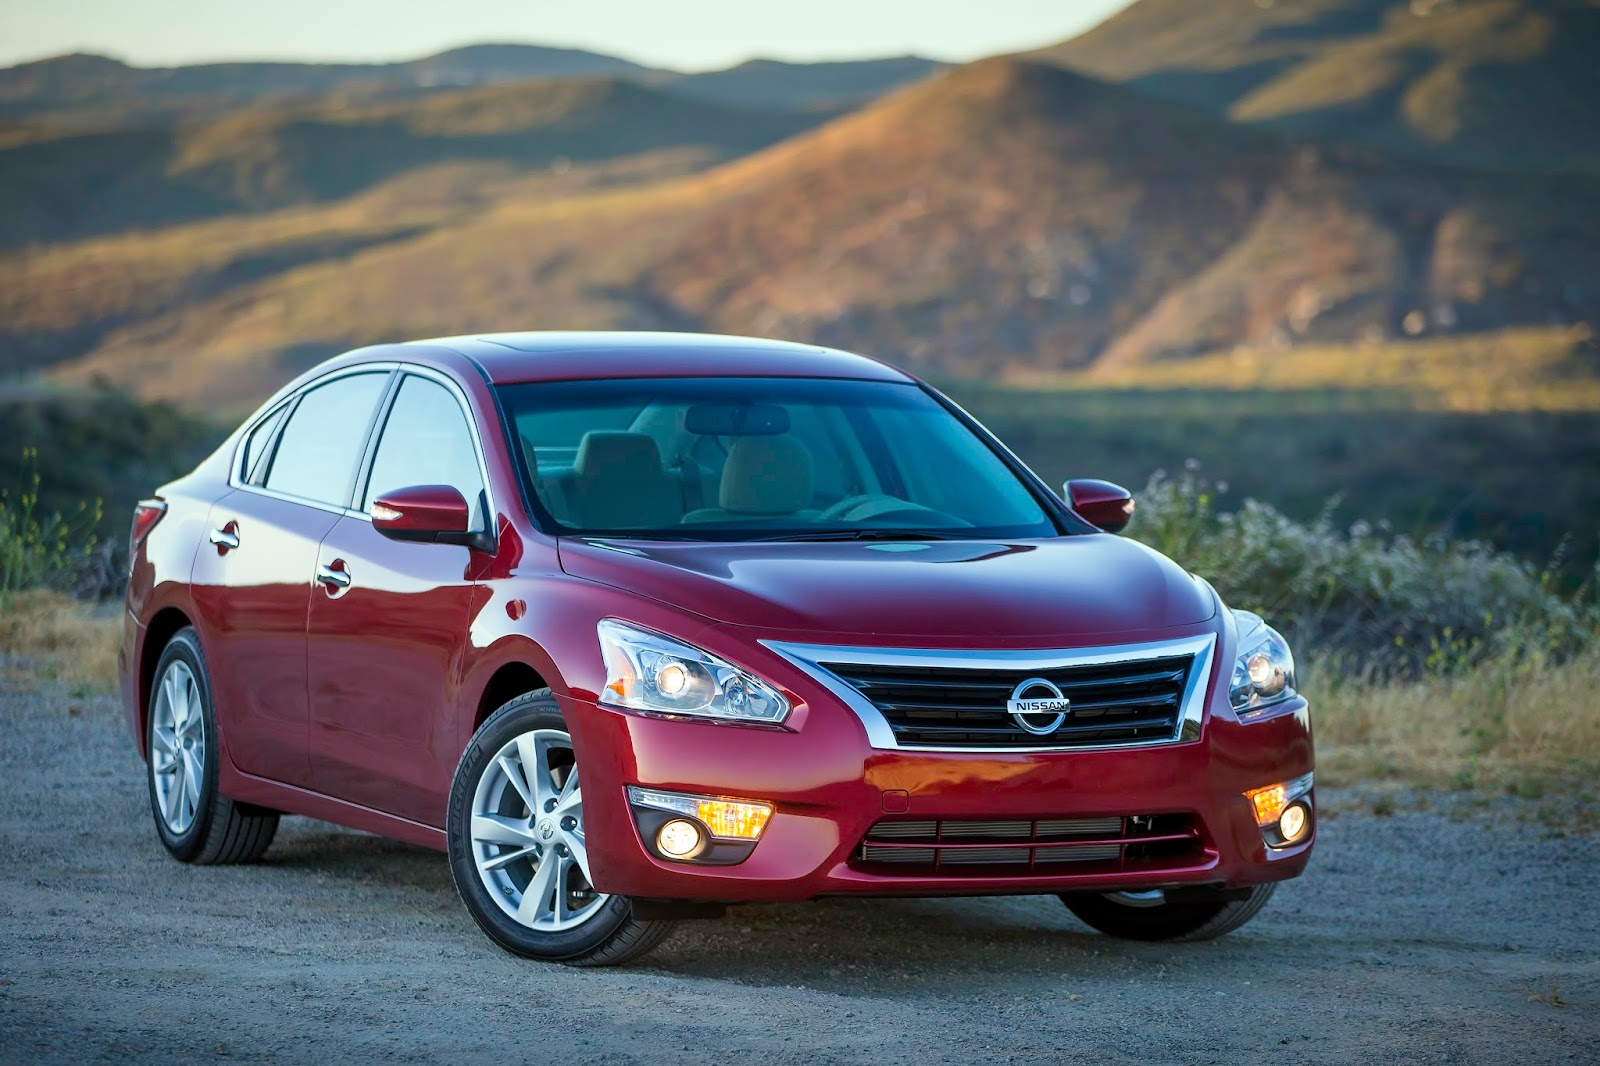 2015 nissan altima sl continues to be a standout in the ultra competitive midsize segment